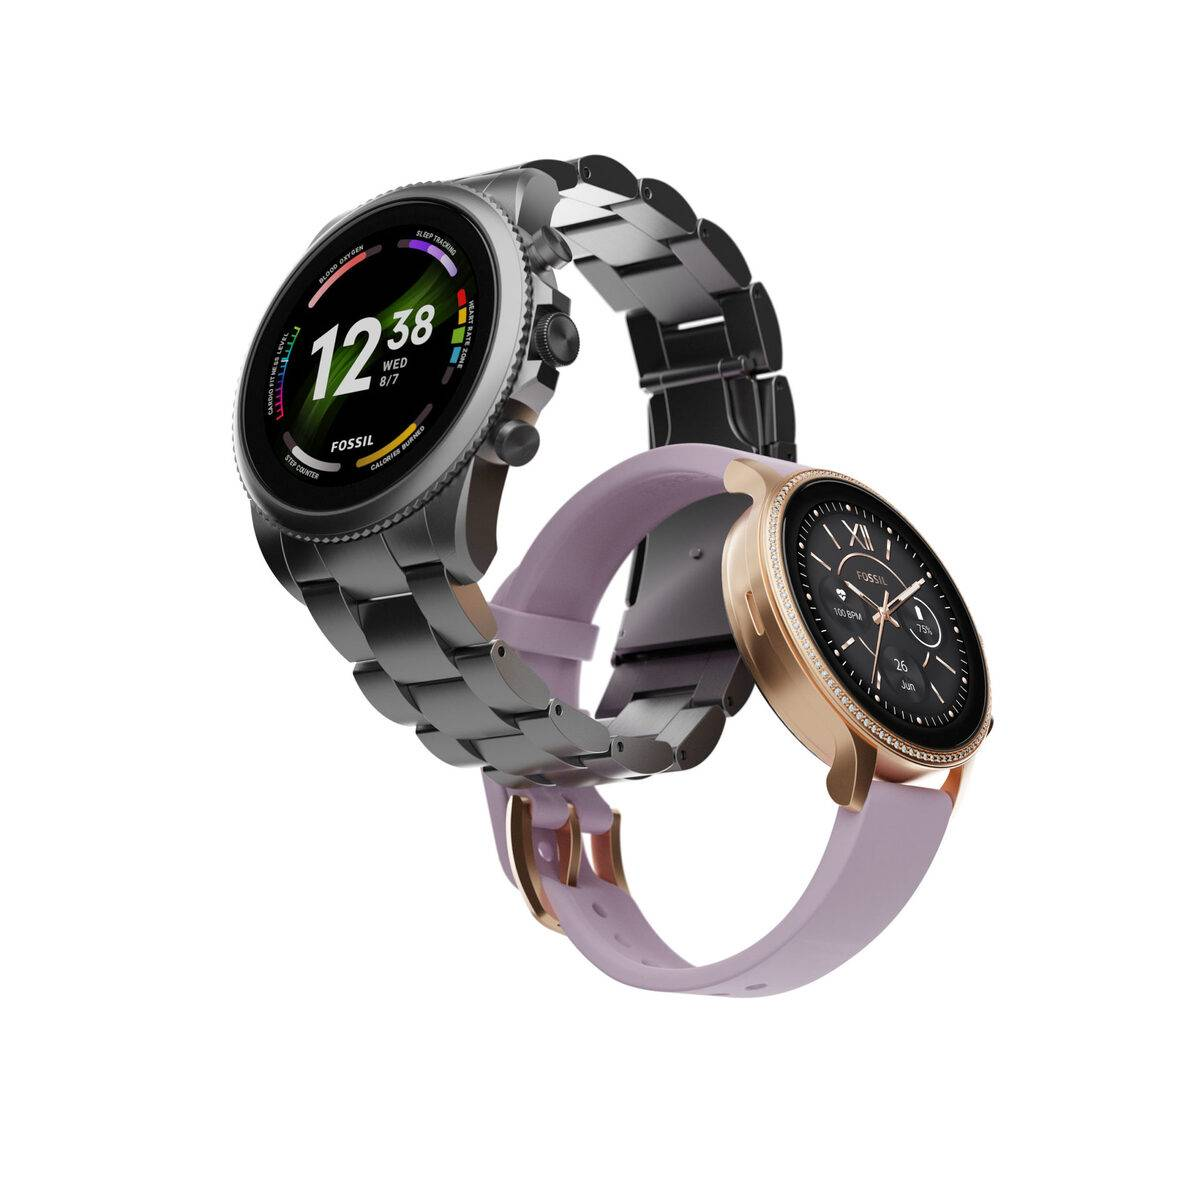 Fossil-Gen-6-smartwatches-46mm-42mm-sizes-scaled.jpg